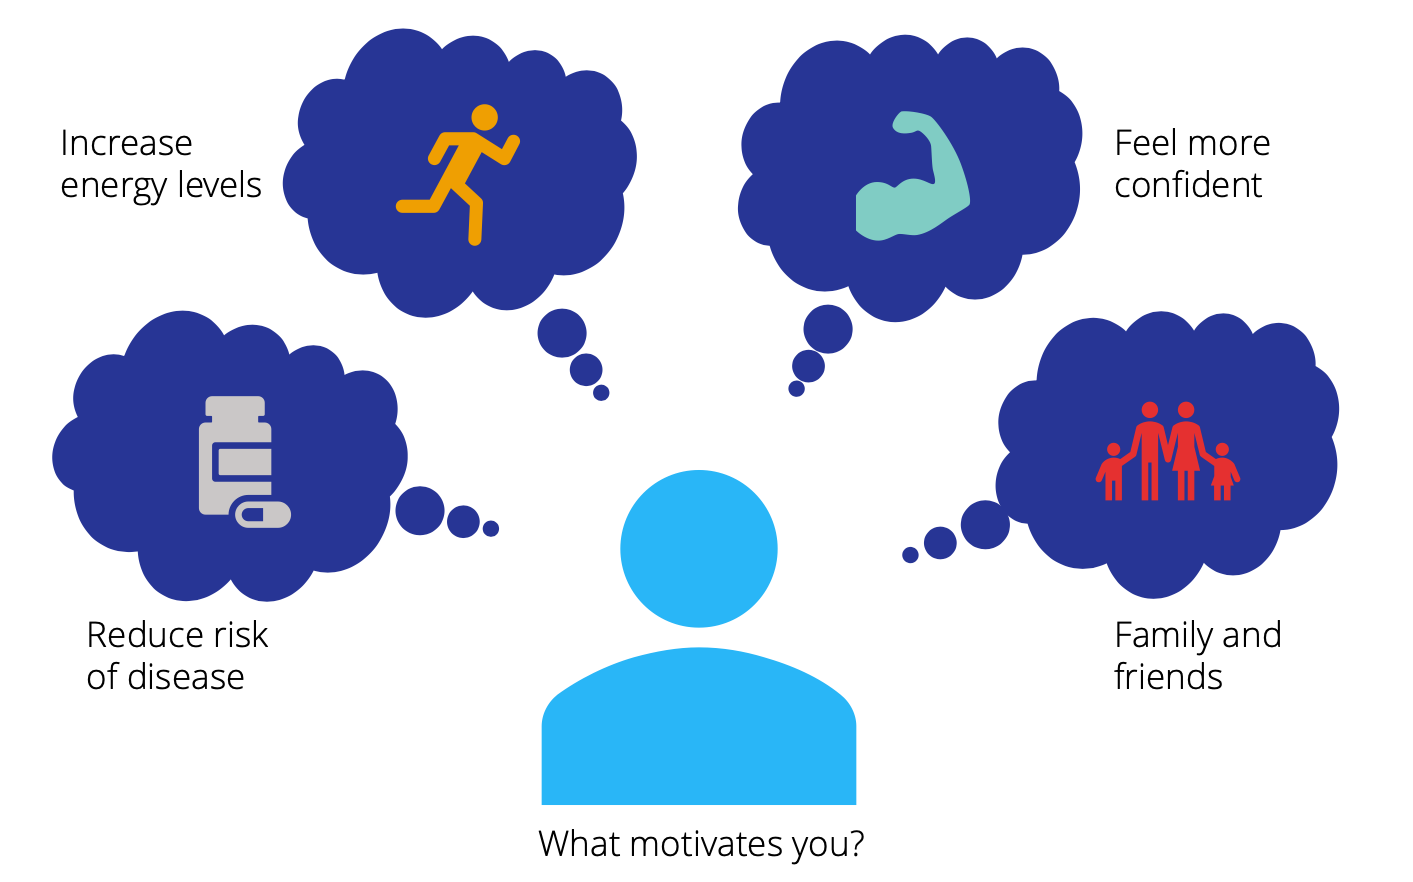 Diagram depicting potential motivators to make lifestyle changes.